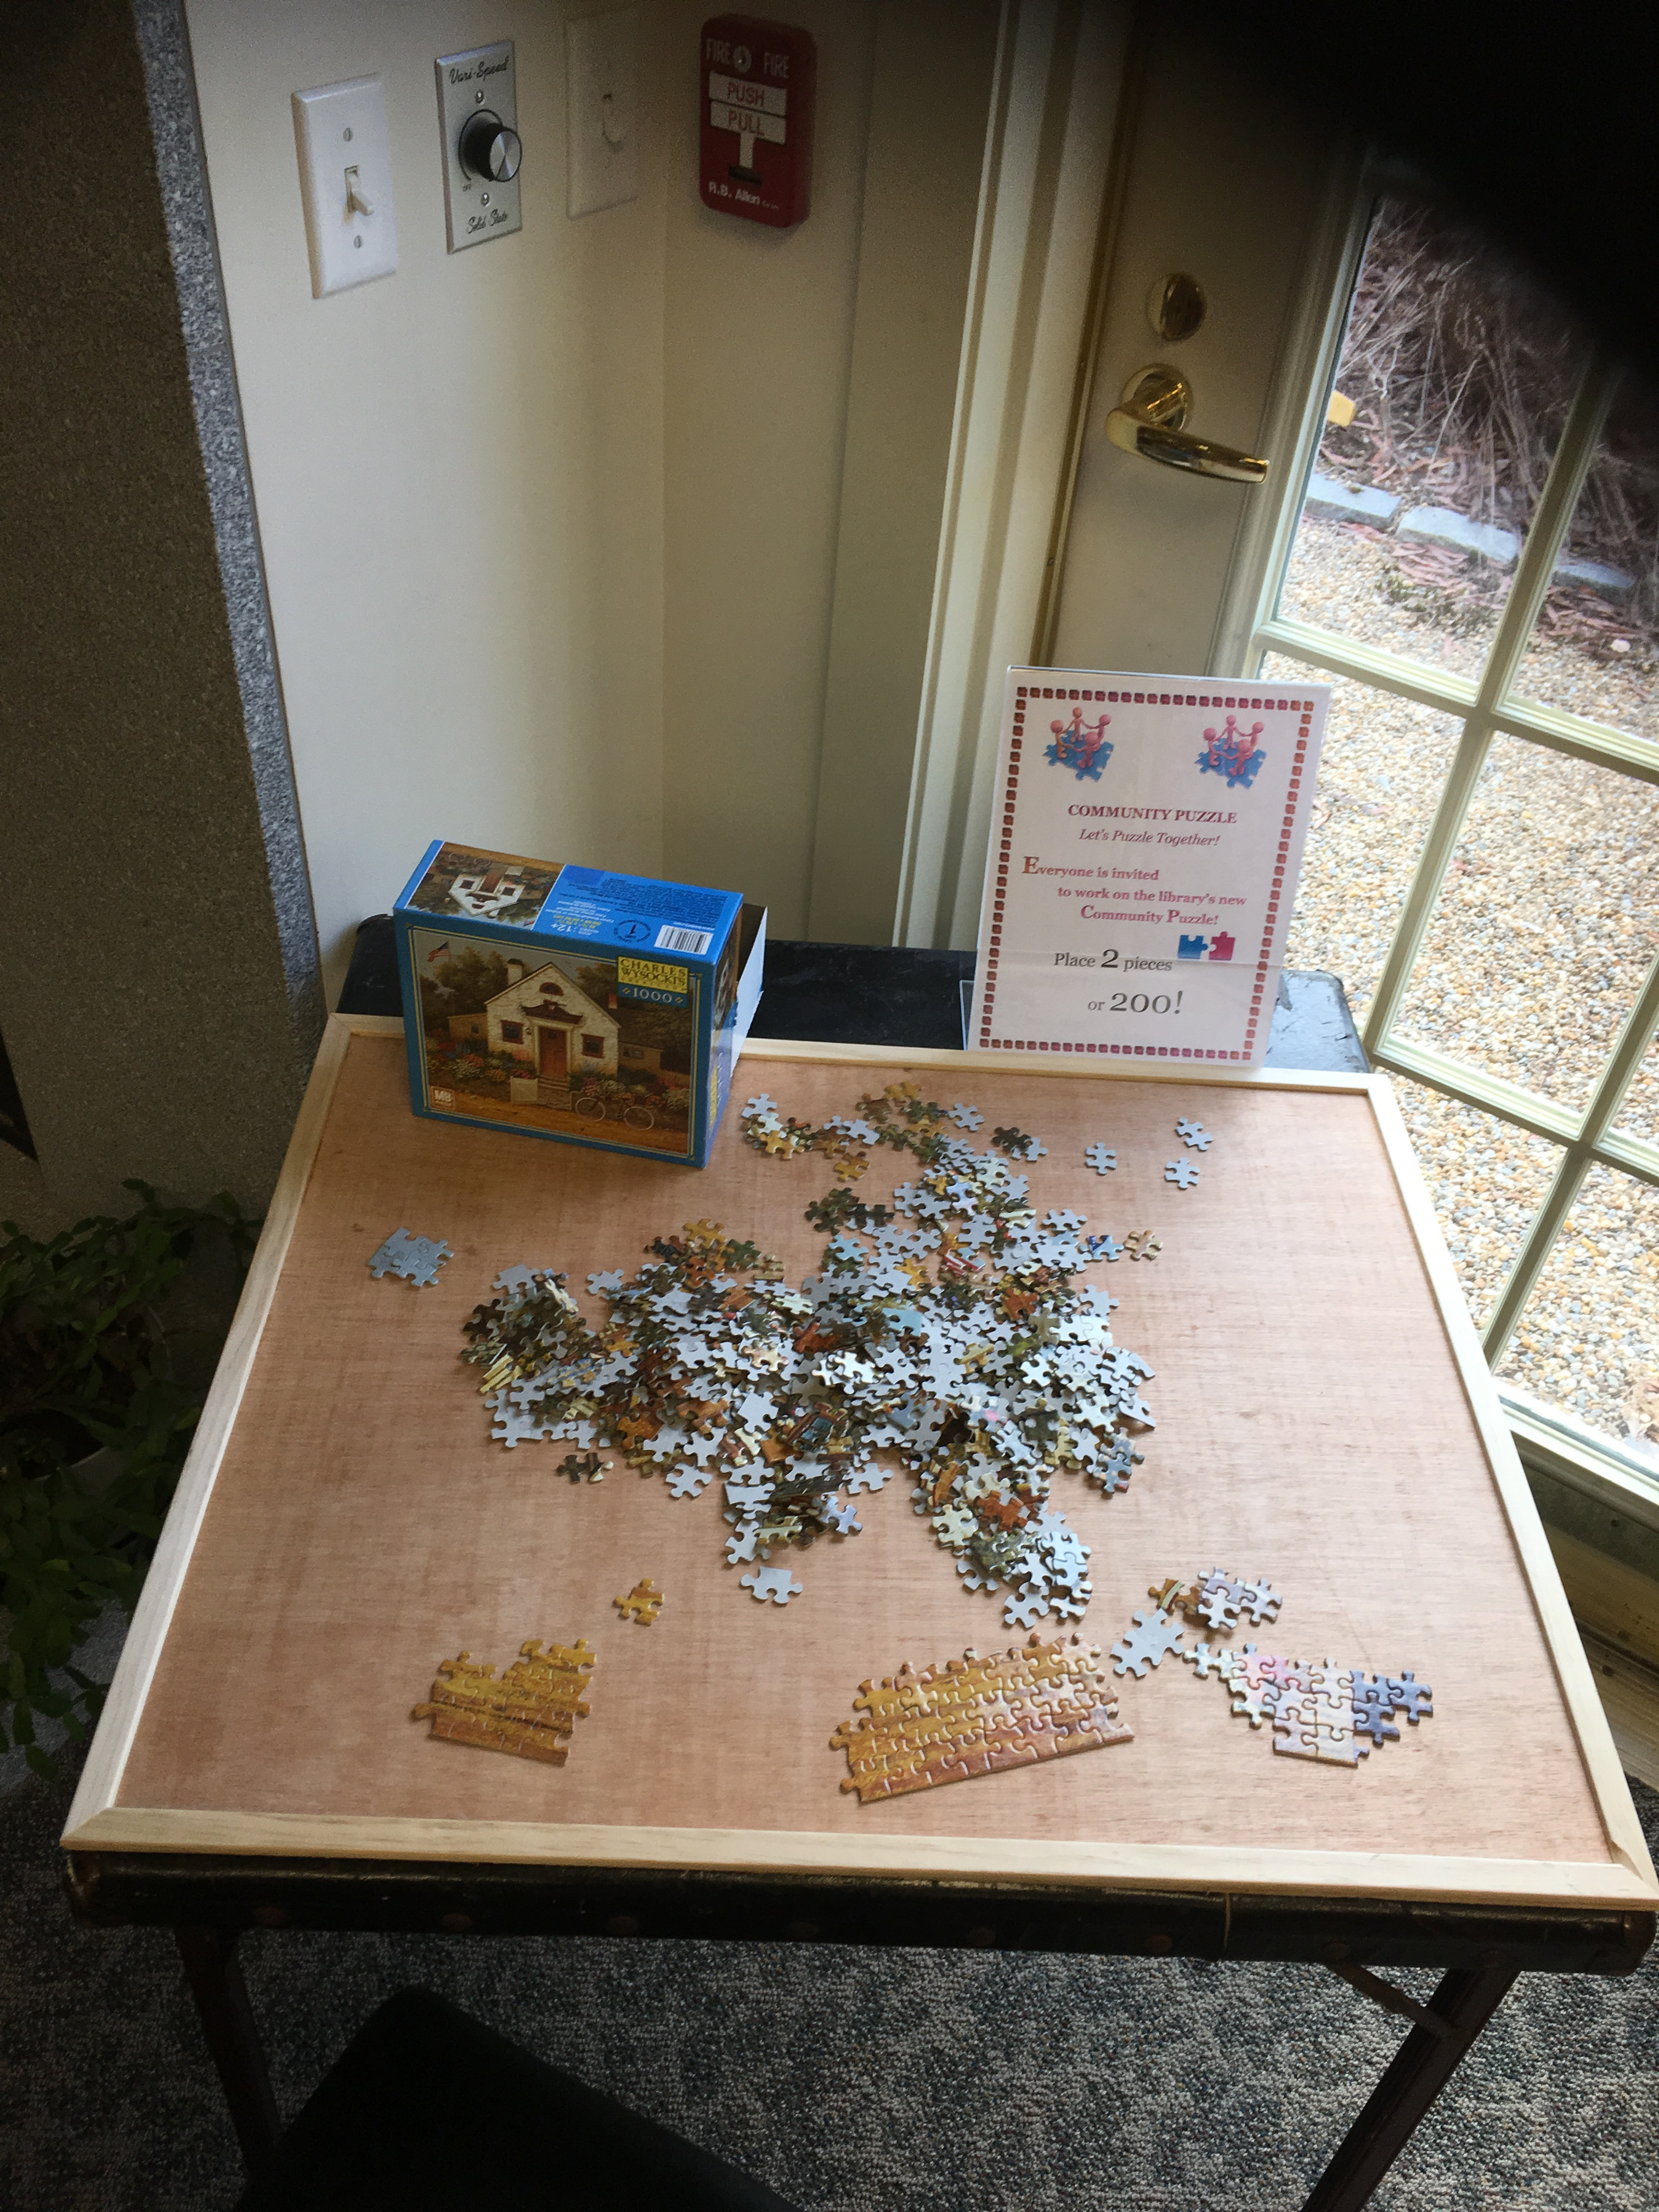 Work on a Puzzle!